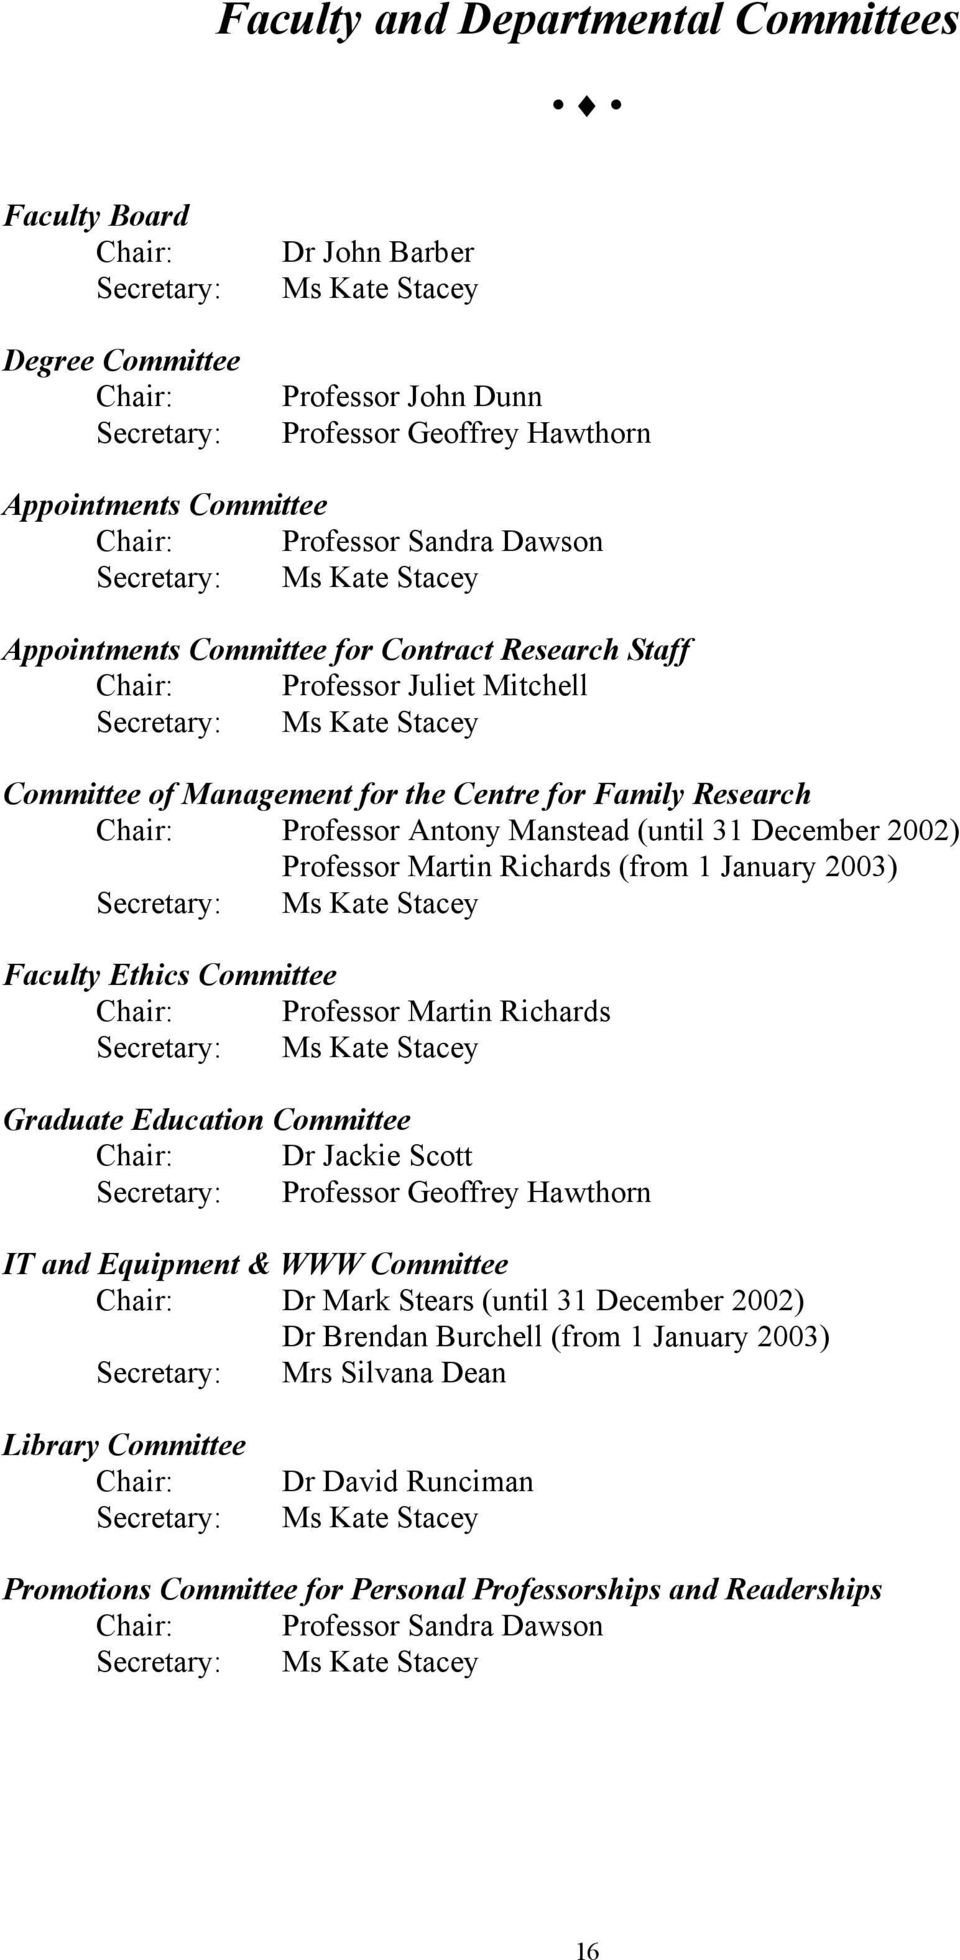 Management for the Centre for Family Research Chair: Professor Antony Manstead (until 31 December 2002) Professor Martin Richards (from 1 January 2003) Secretary: Ms Kate Stacey Faculty Ethics